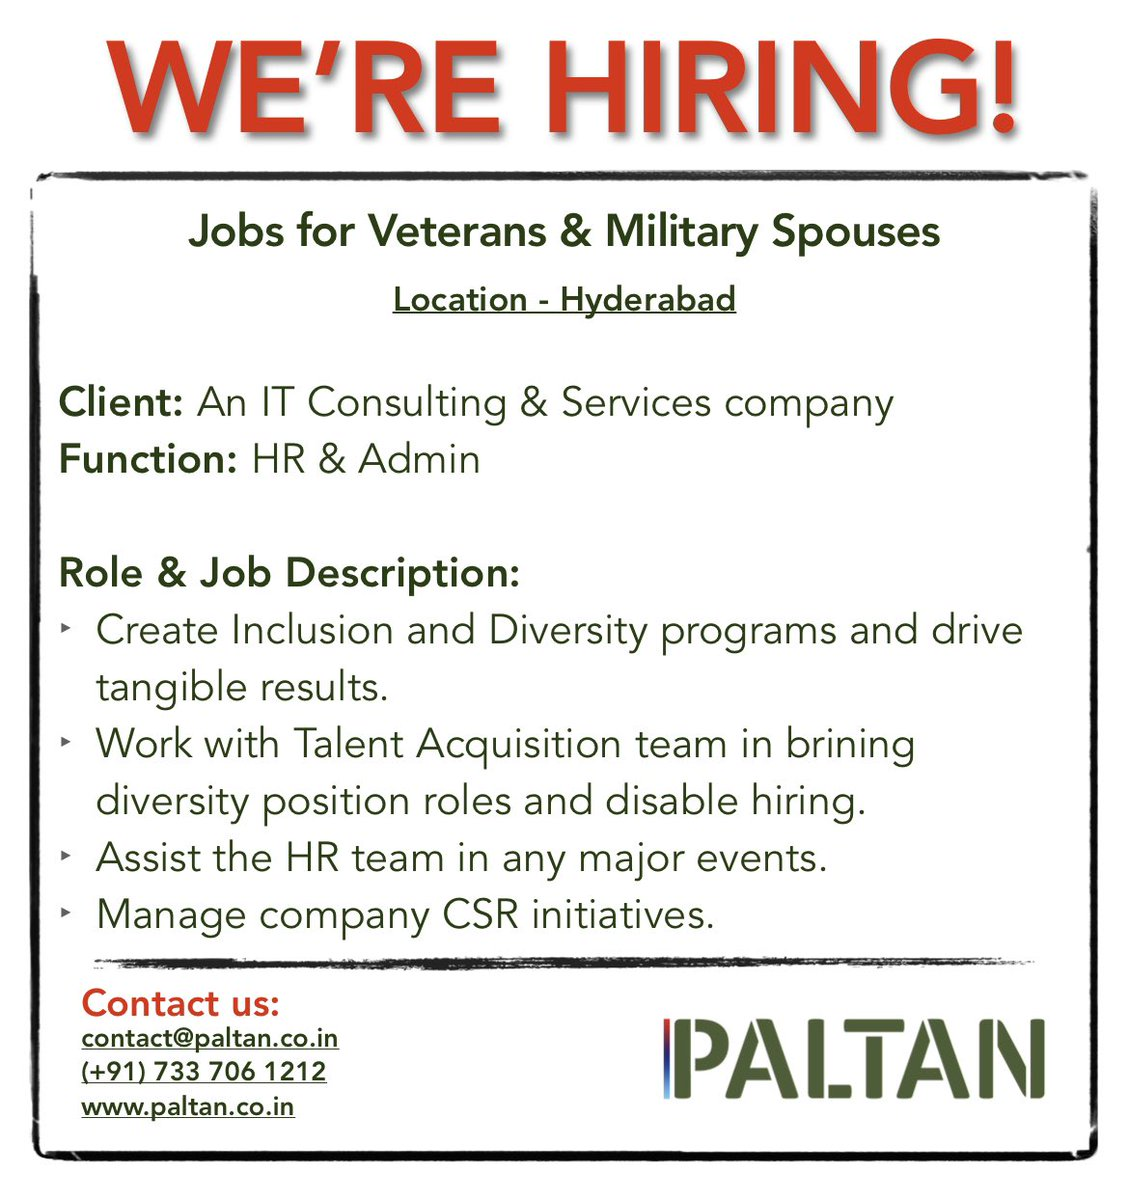 #Hiring for our IT Services client. #Veteran #Military #Jobs